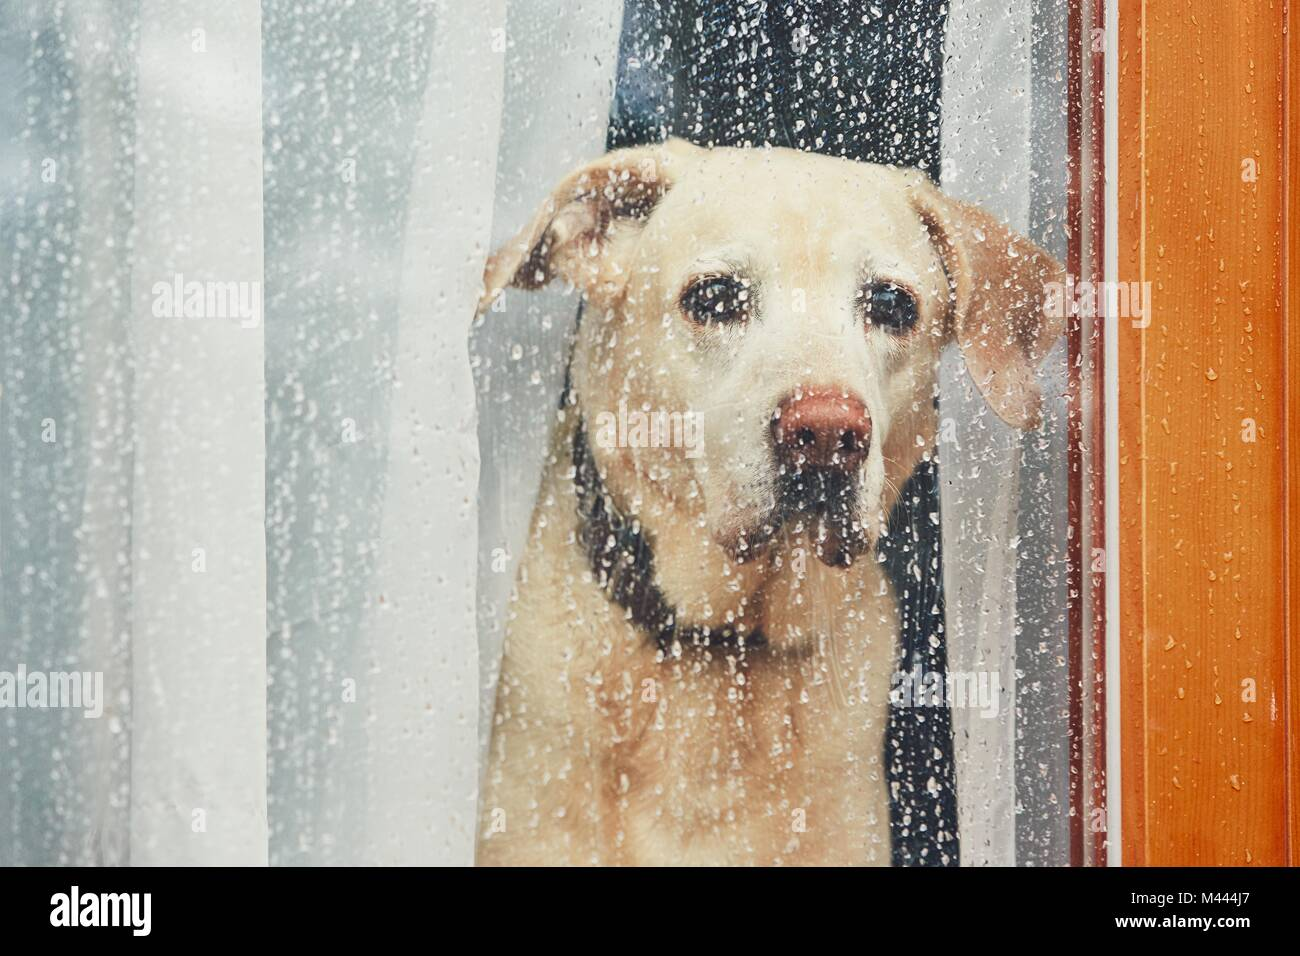 Sad dog waiting alone at home. Labrador retriever looking through window during rain. - Stock Image